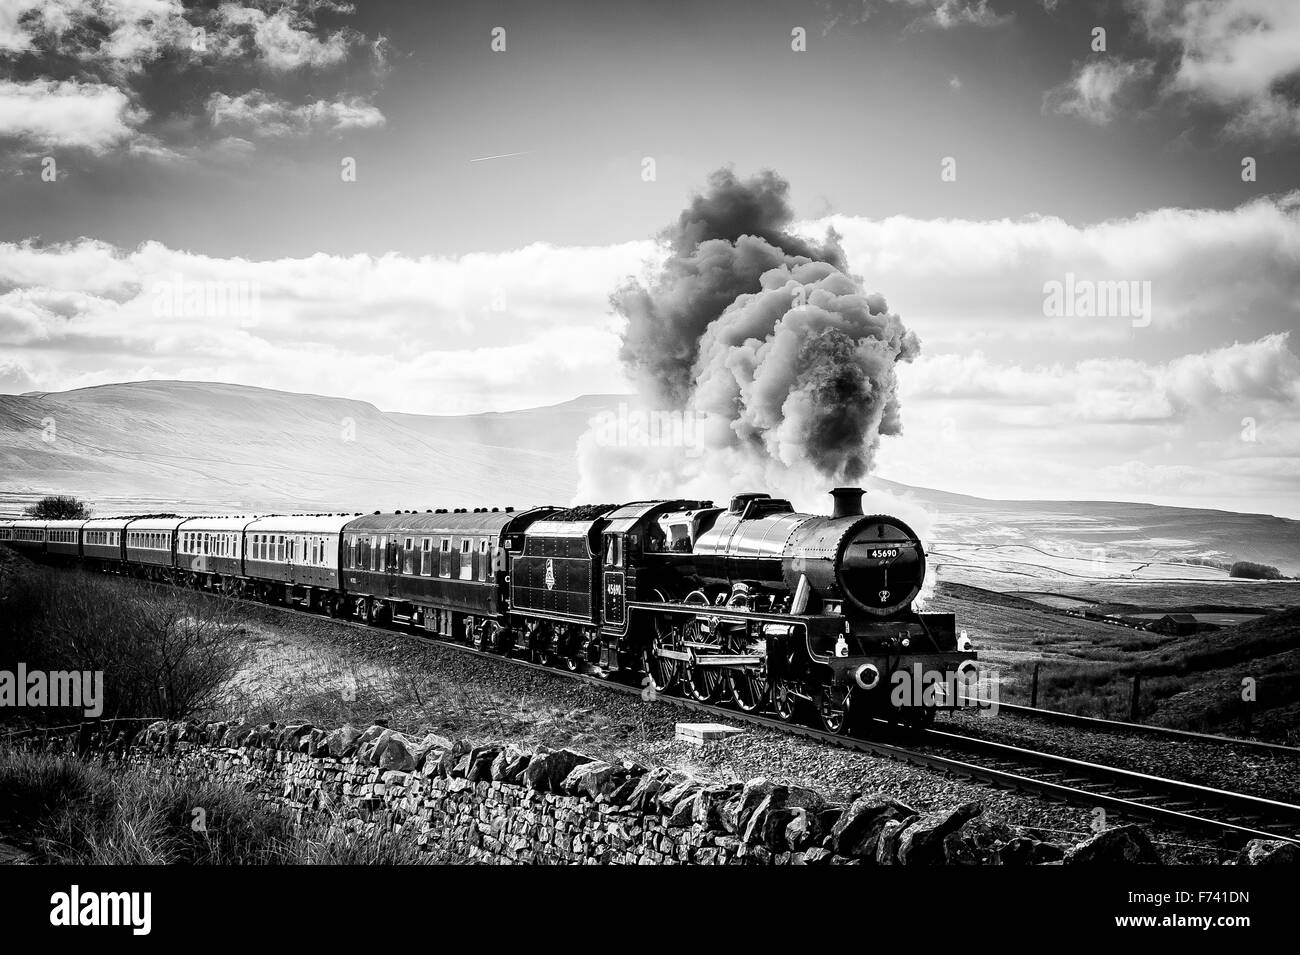 The Fellsman steam train Leander at Ribblehead - Stock Image